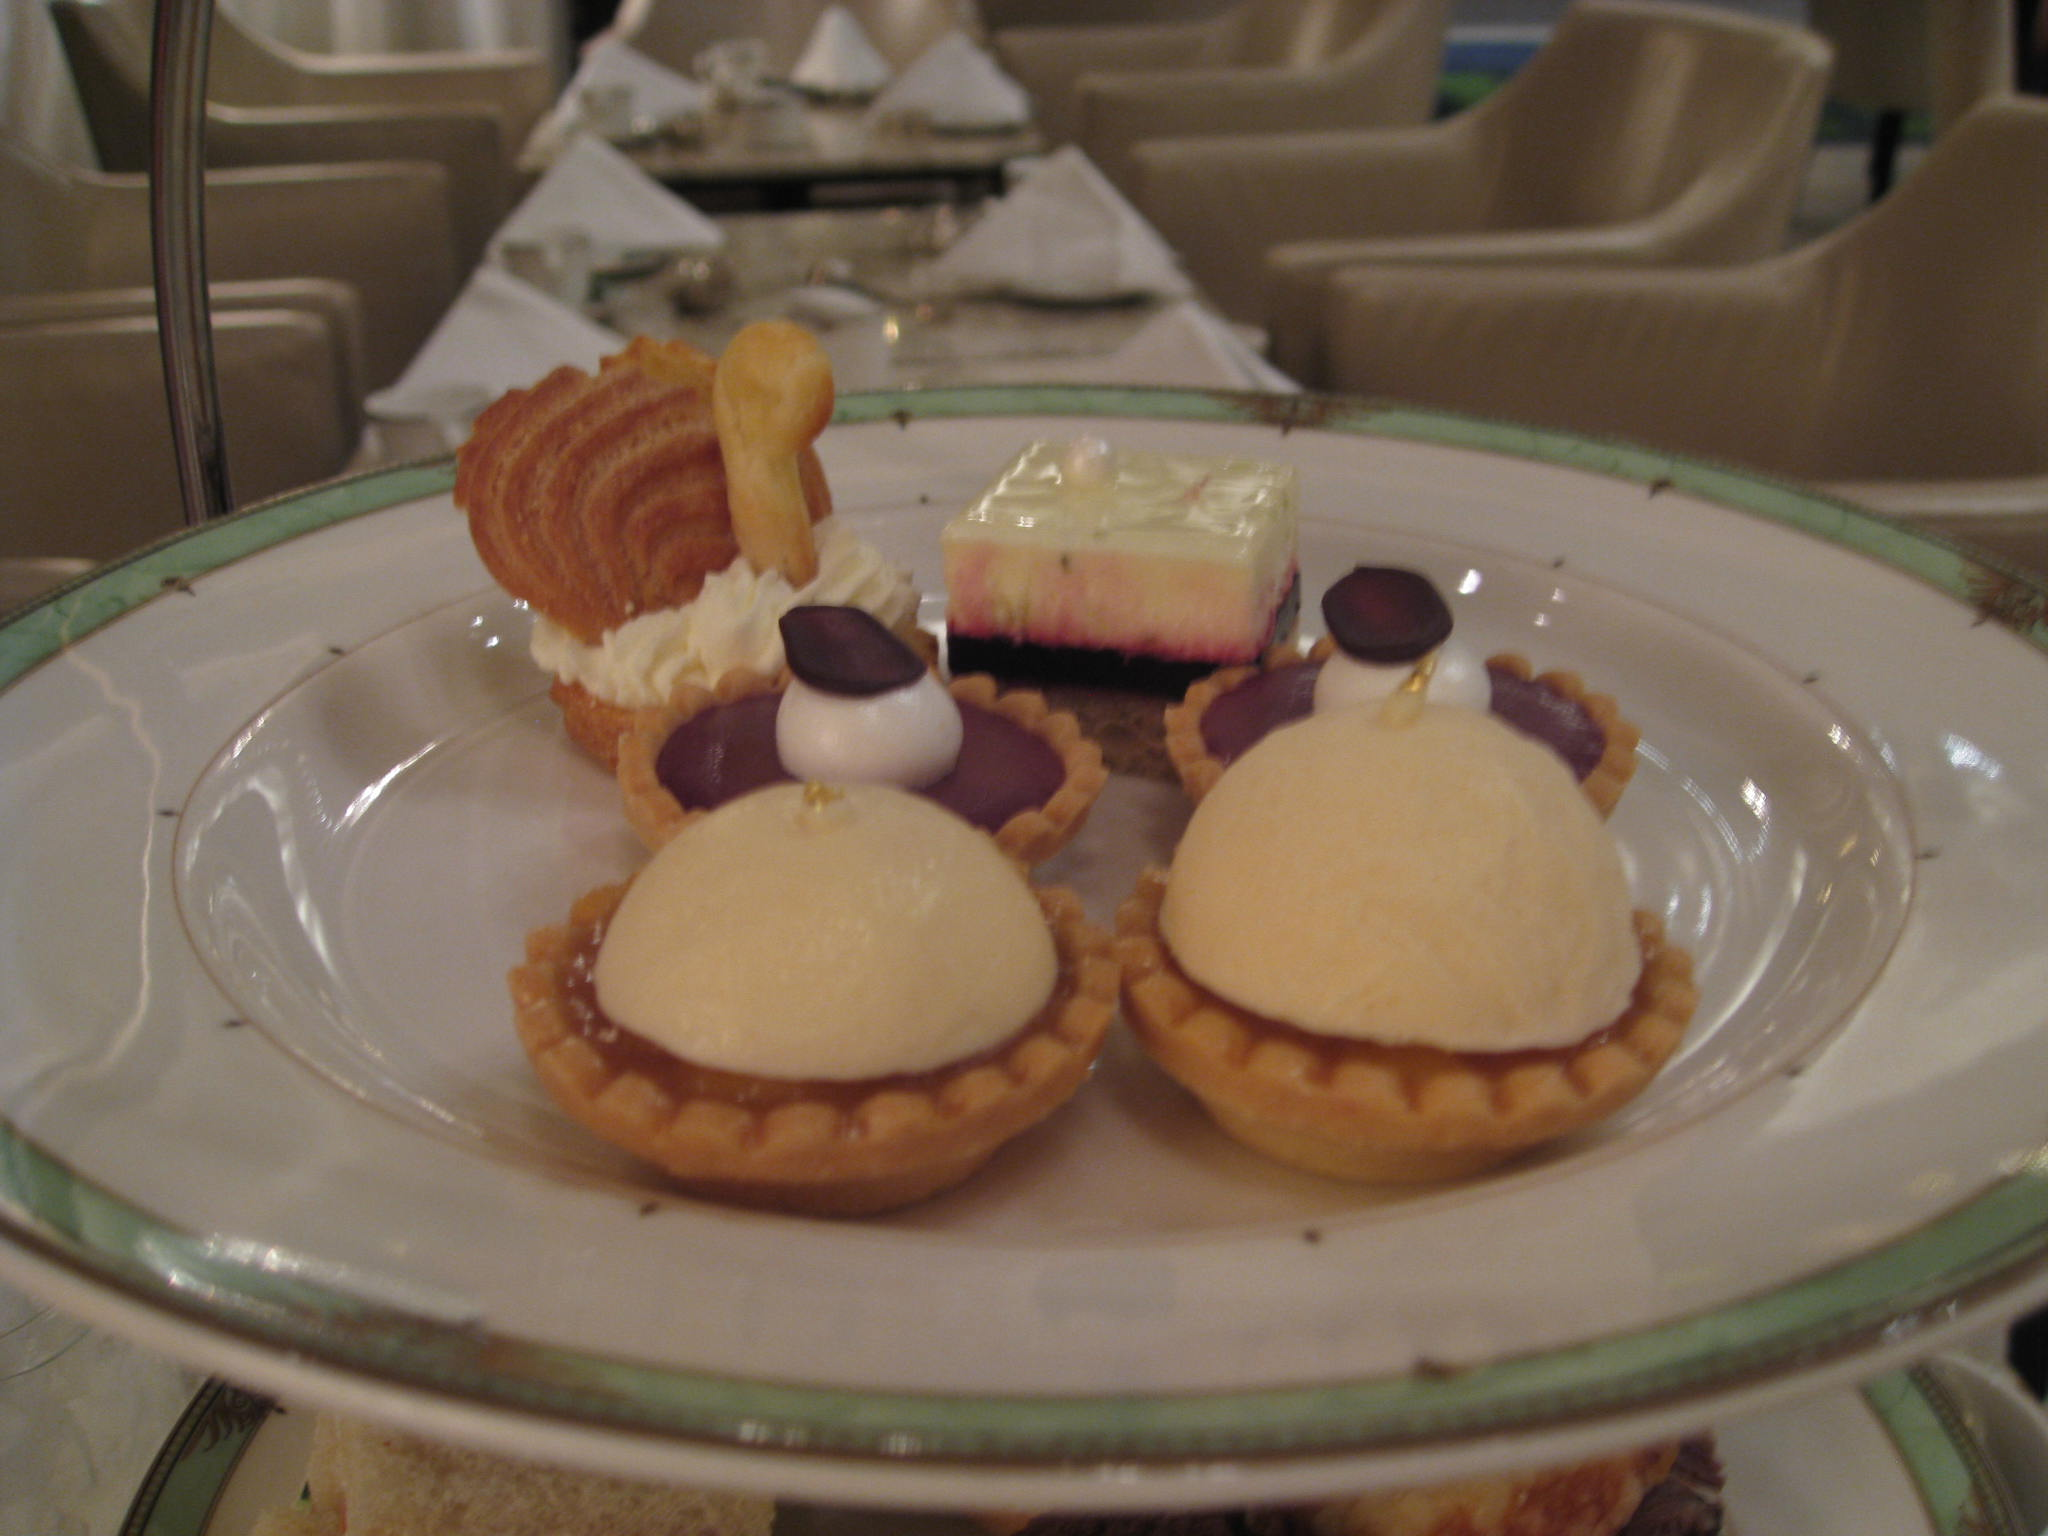 d0a7f4c7f6 Afternoon tea at The Drake Hotel in Chicago | Wendi Hiebert